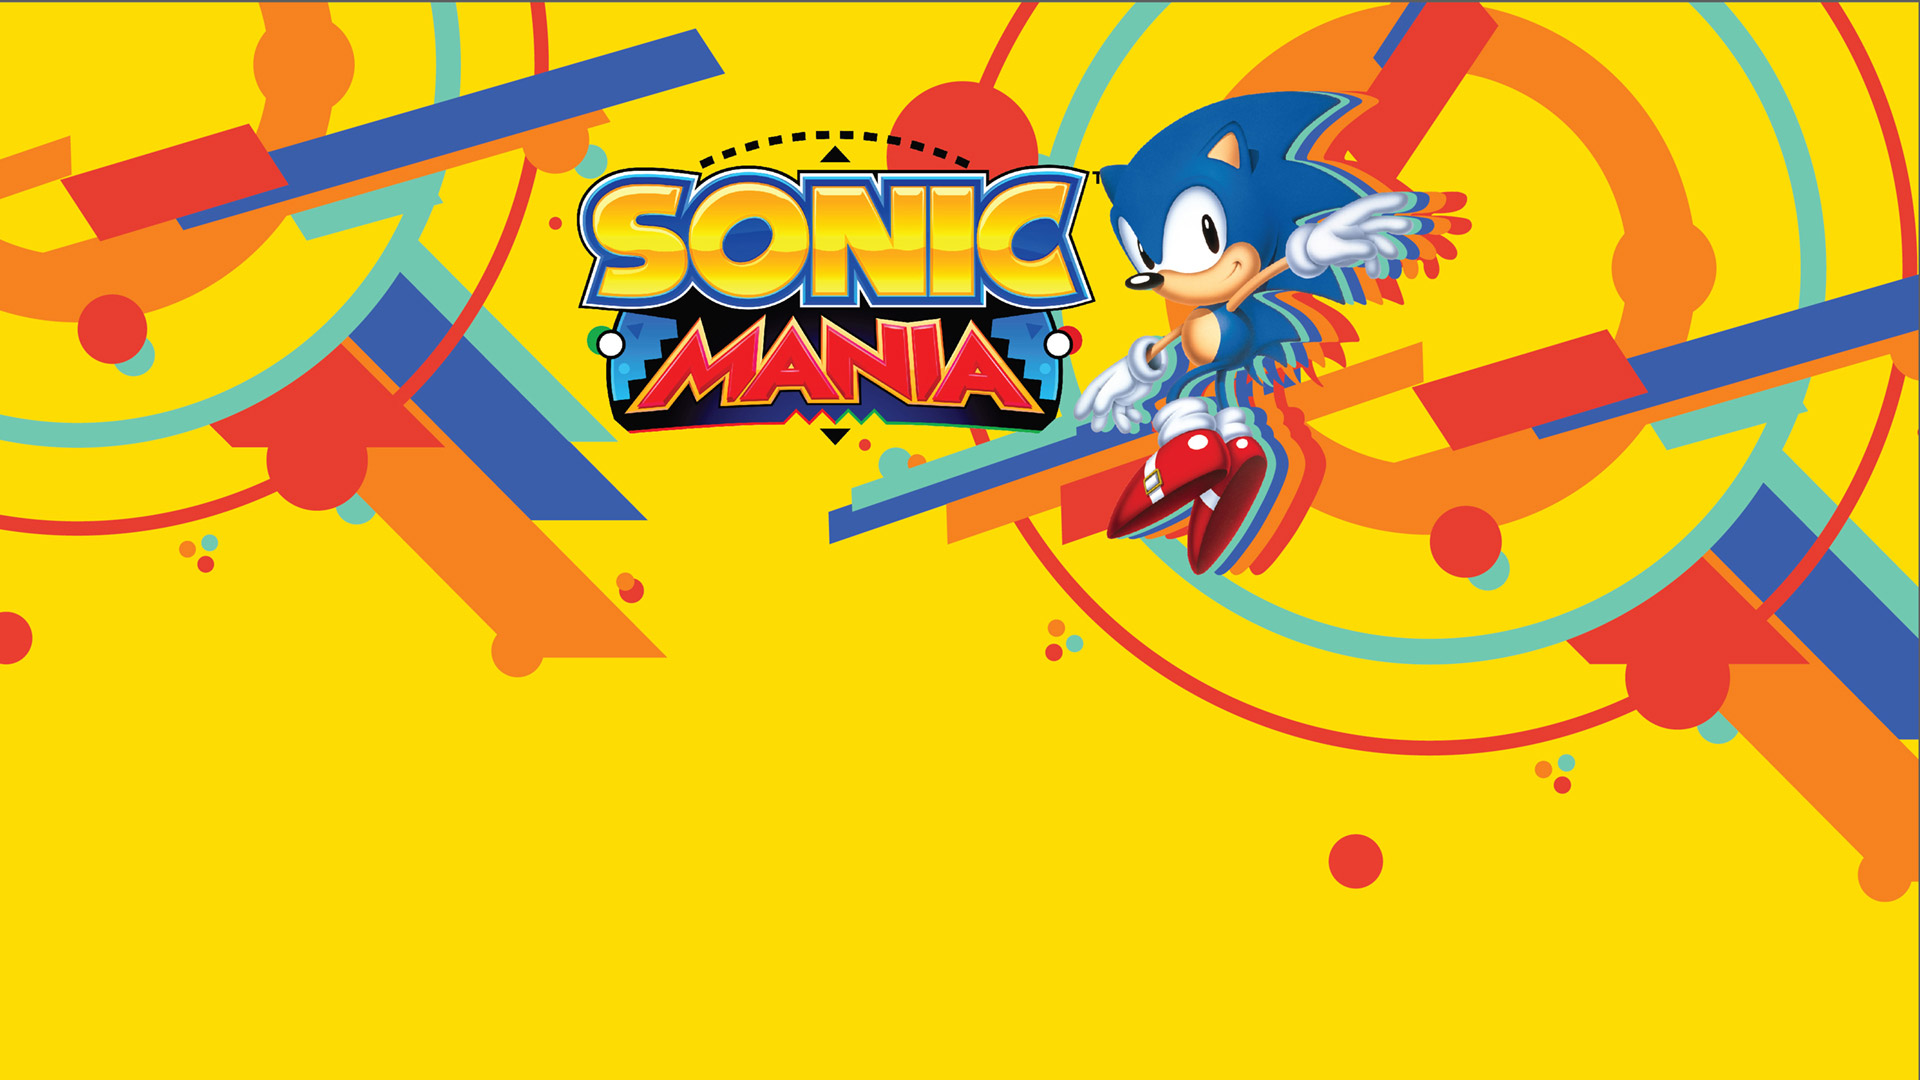 Sonic Mania Wallpaper in 1920x1080